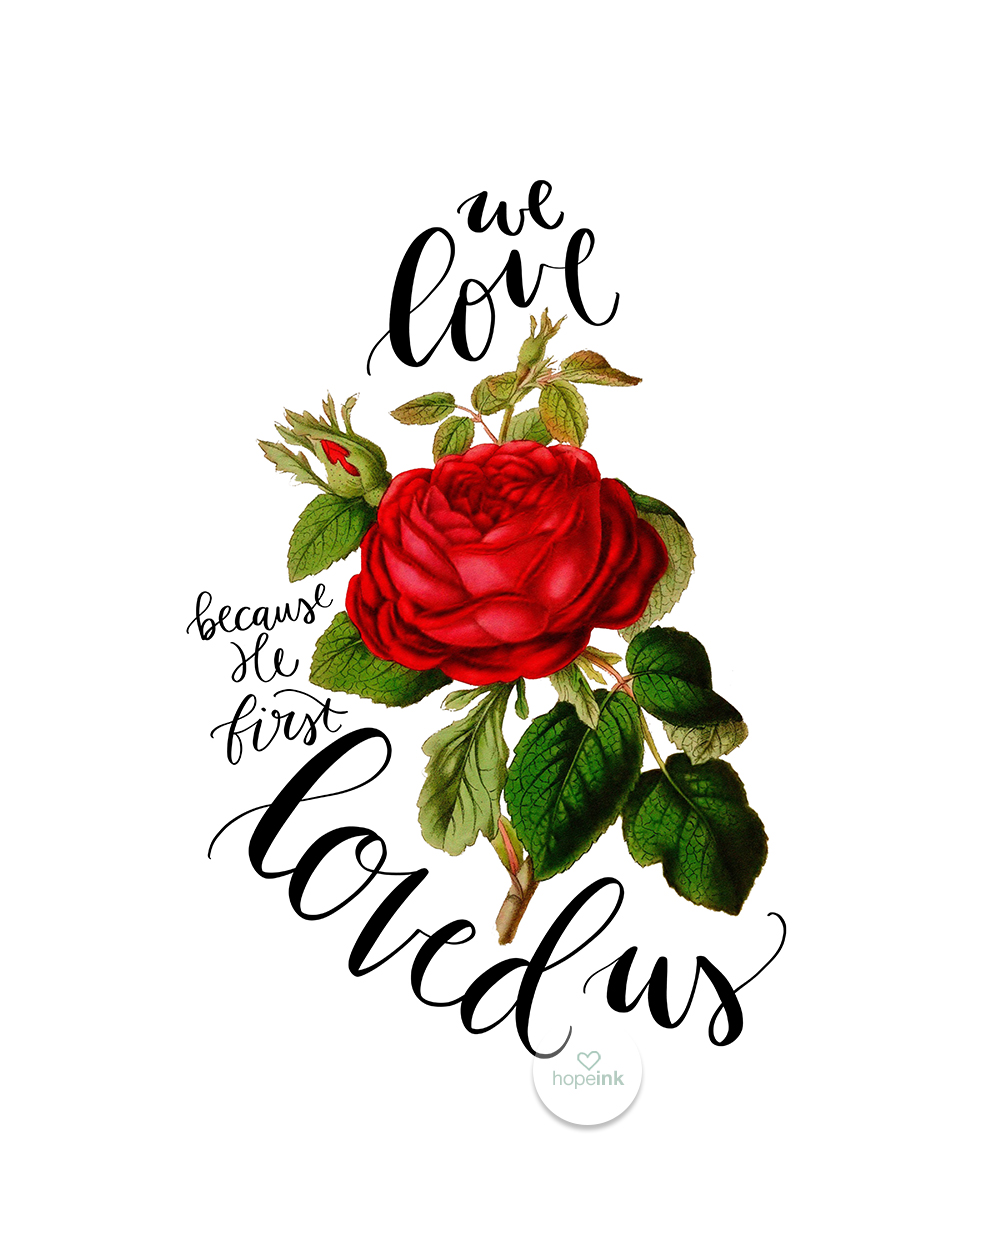 We Love Because He First Loved Us | Hand Lettered Vintage Rose Art by Hope Ink.jpg